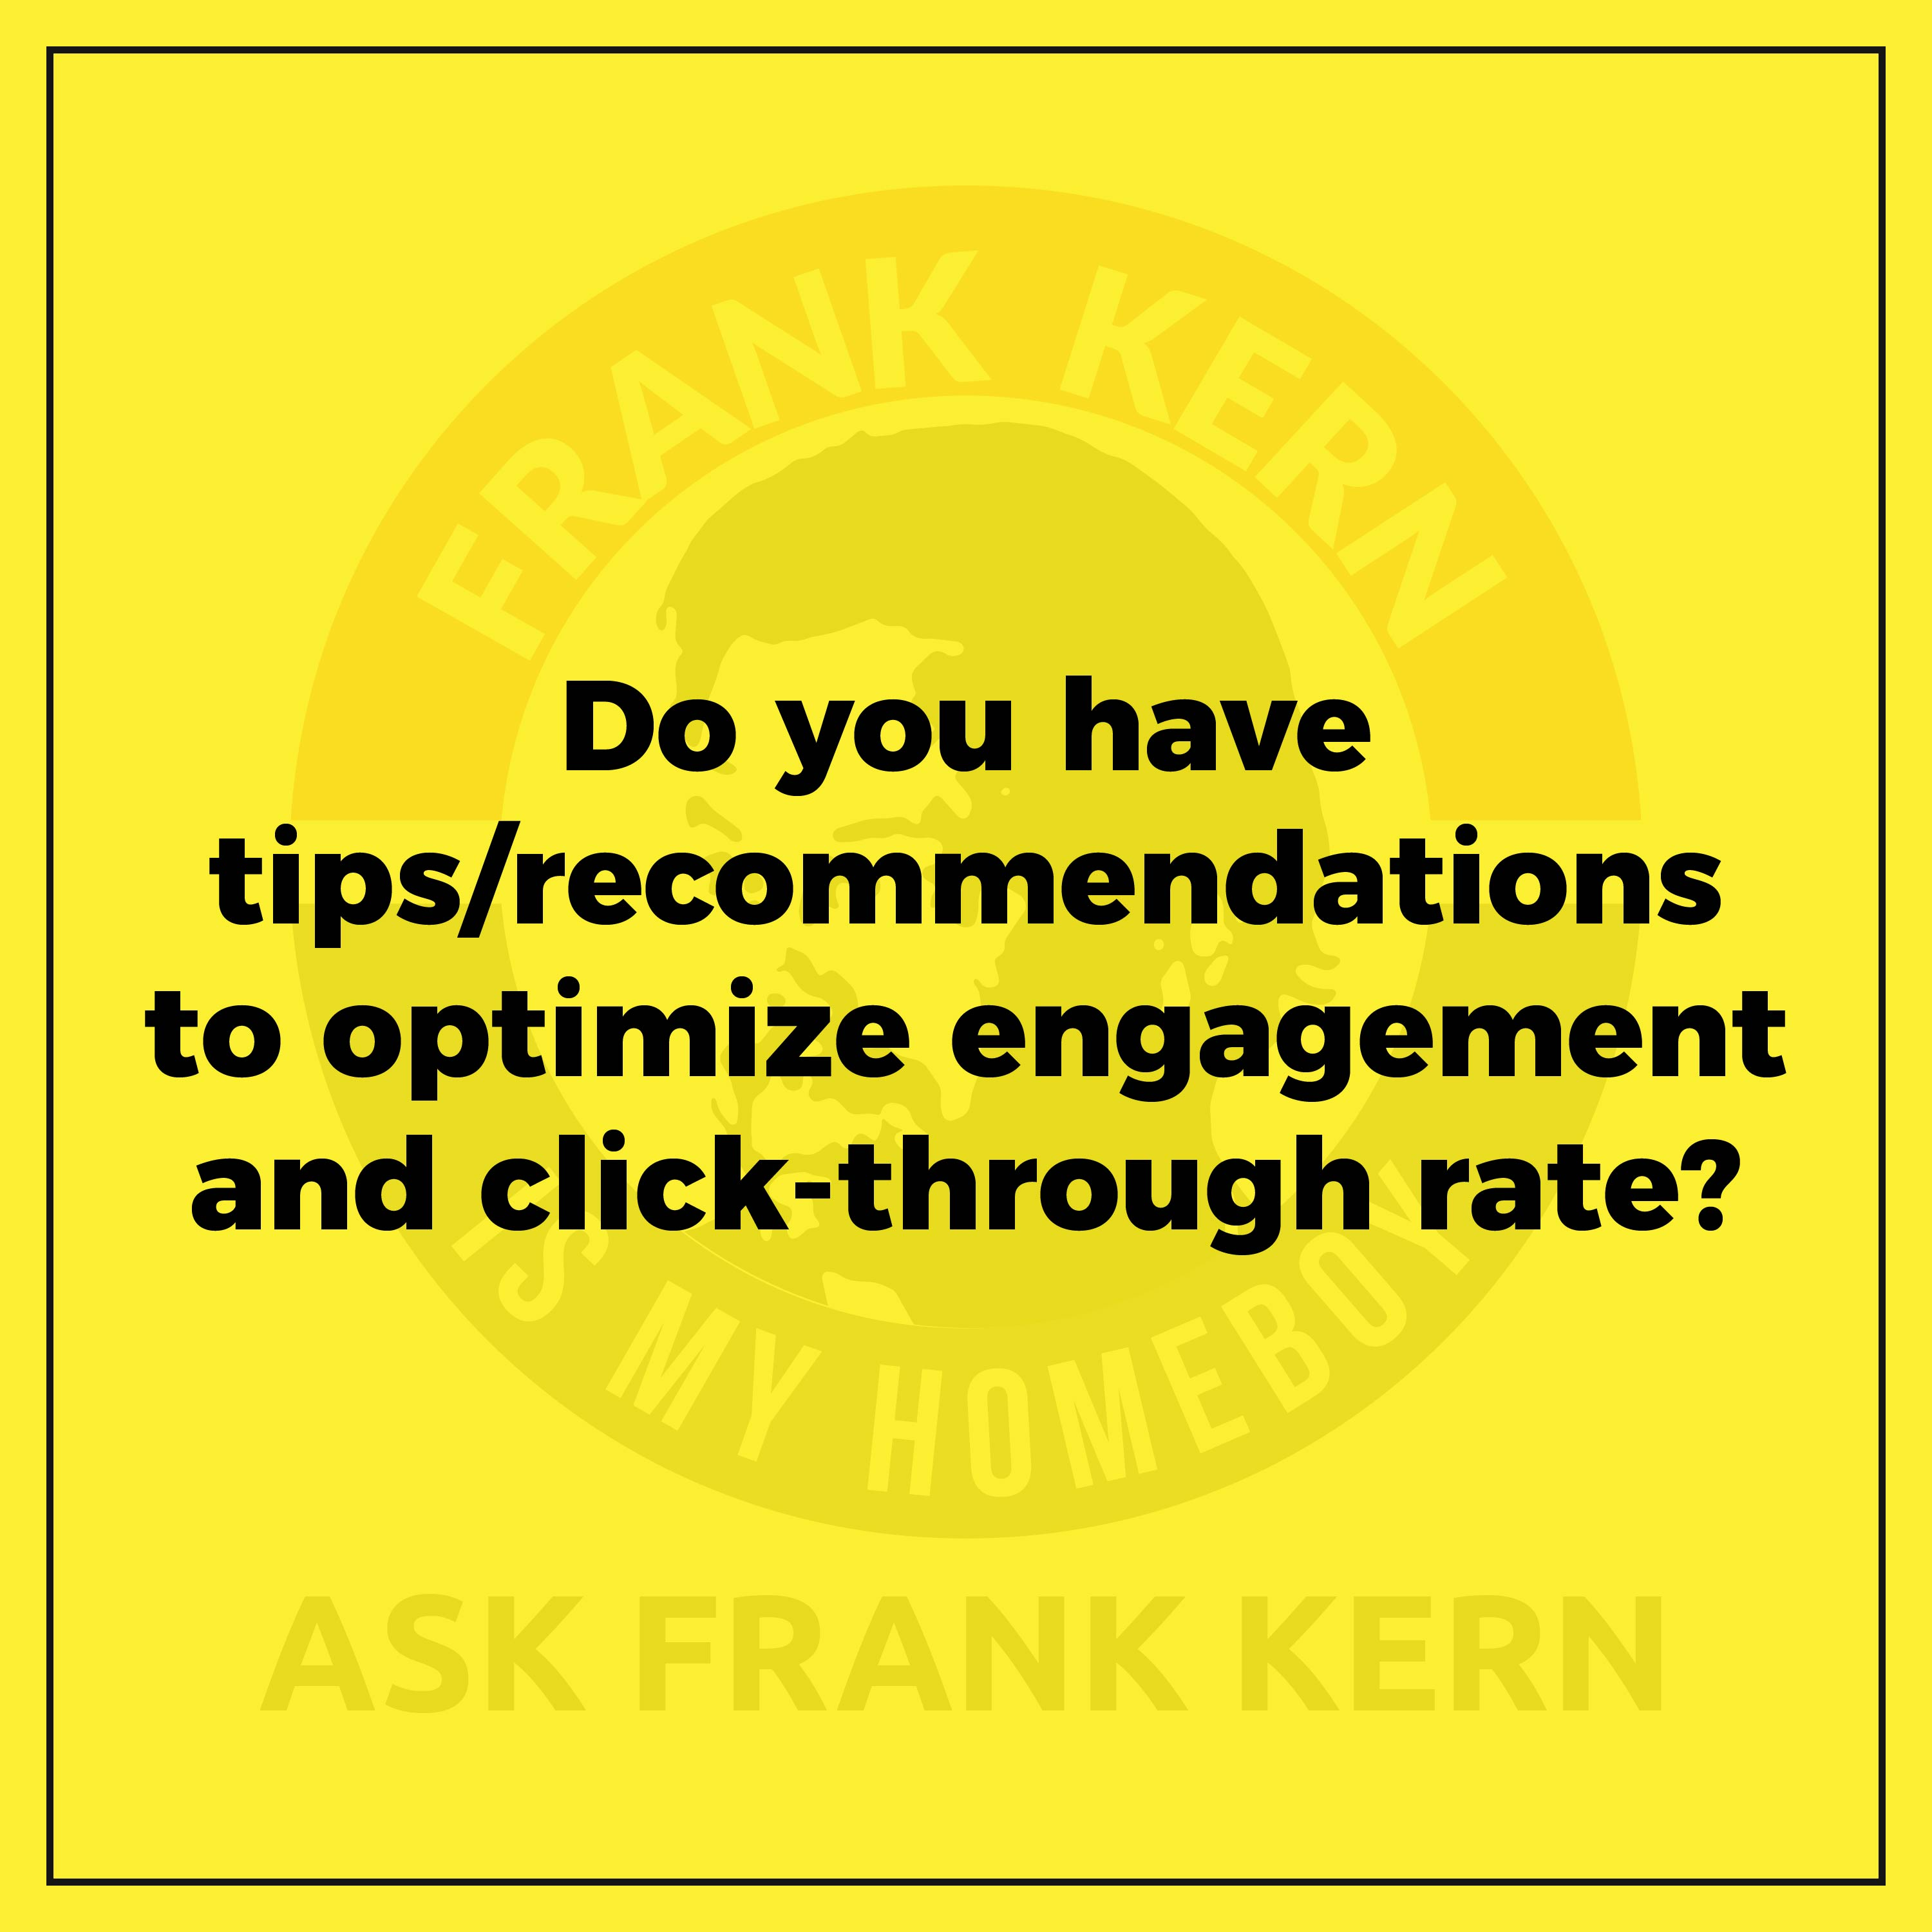 Do you have tips/recommendations to optimize engagement and click-through rate?